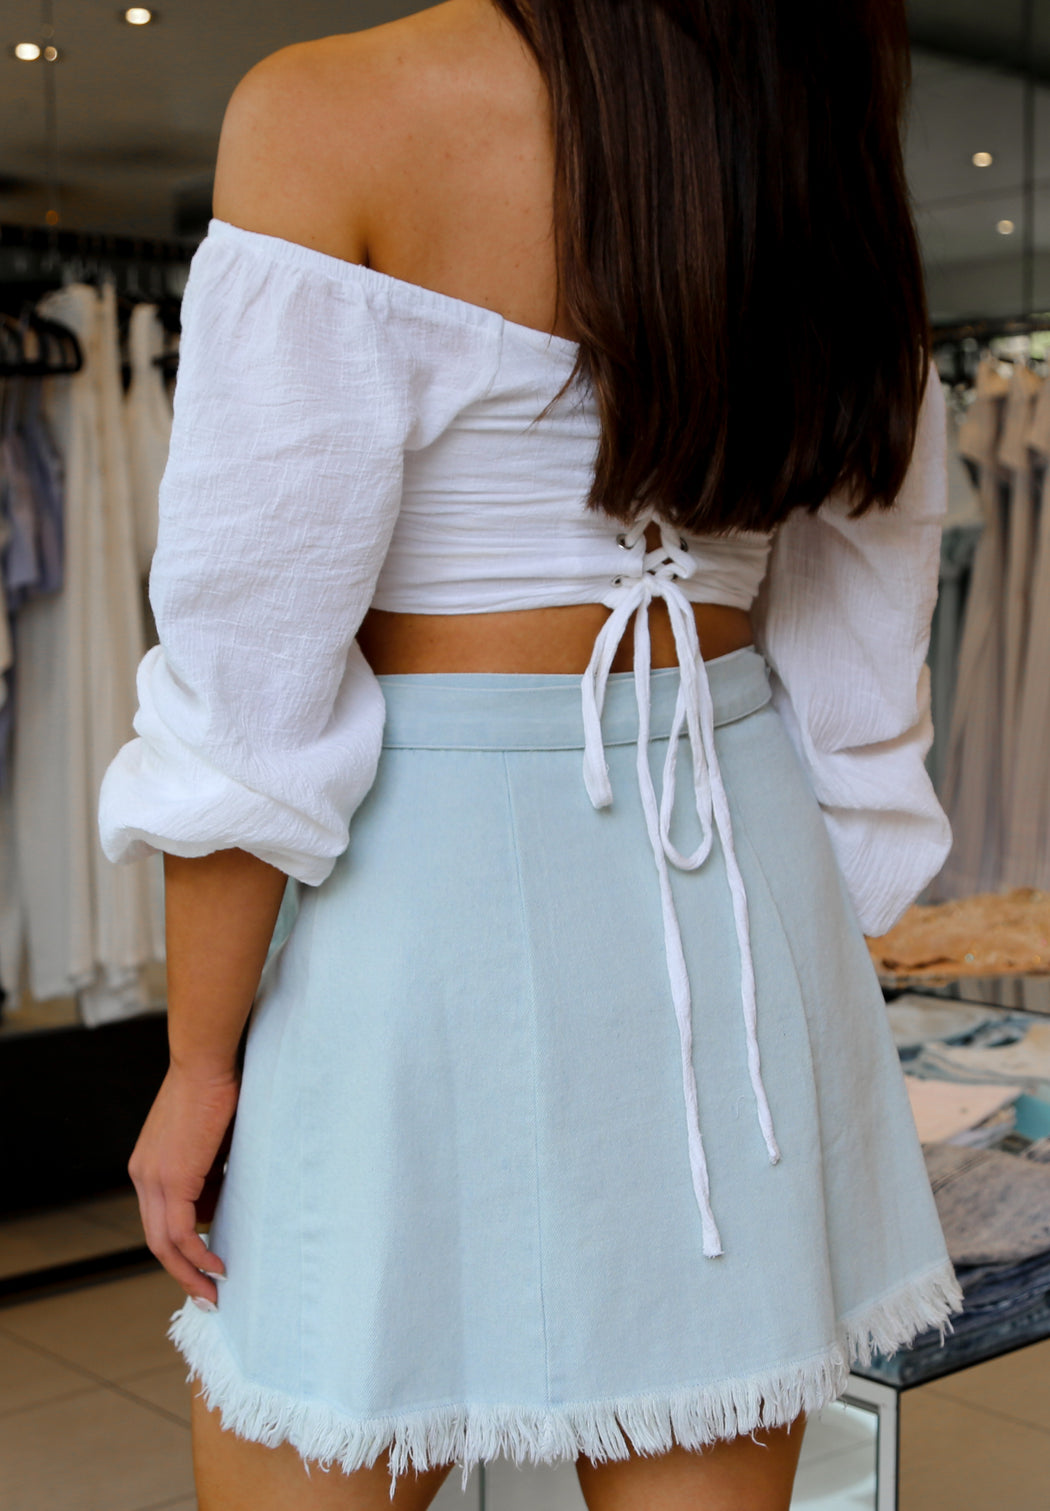 The Heat Denim Skirt